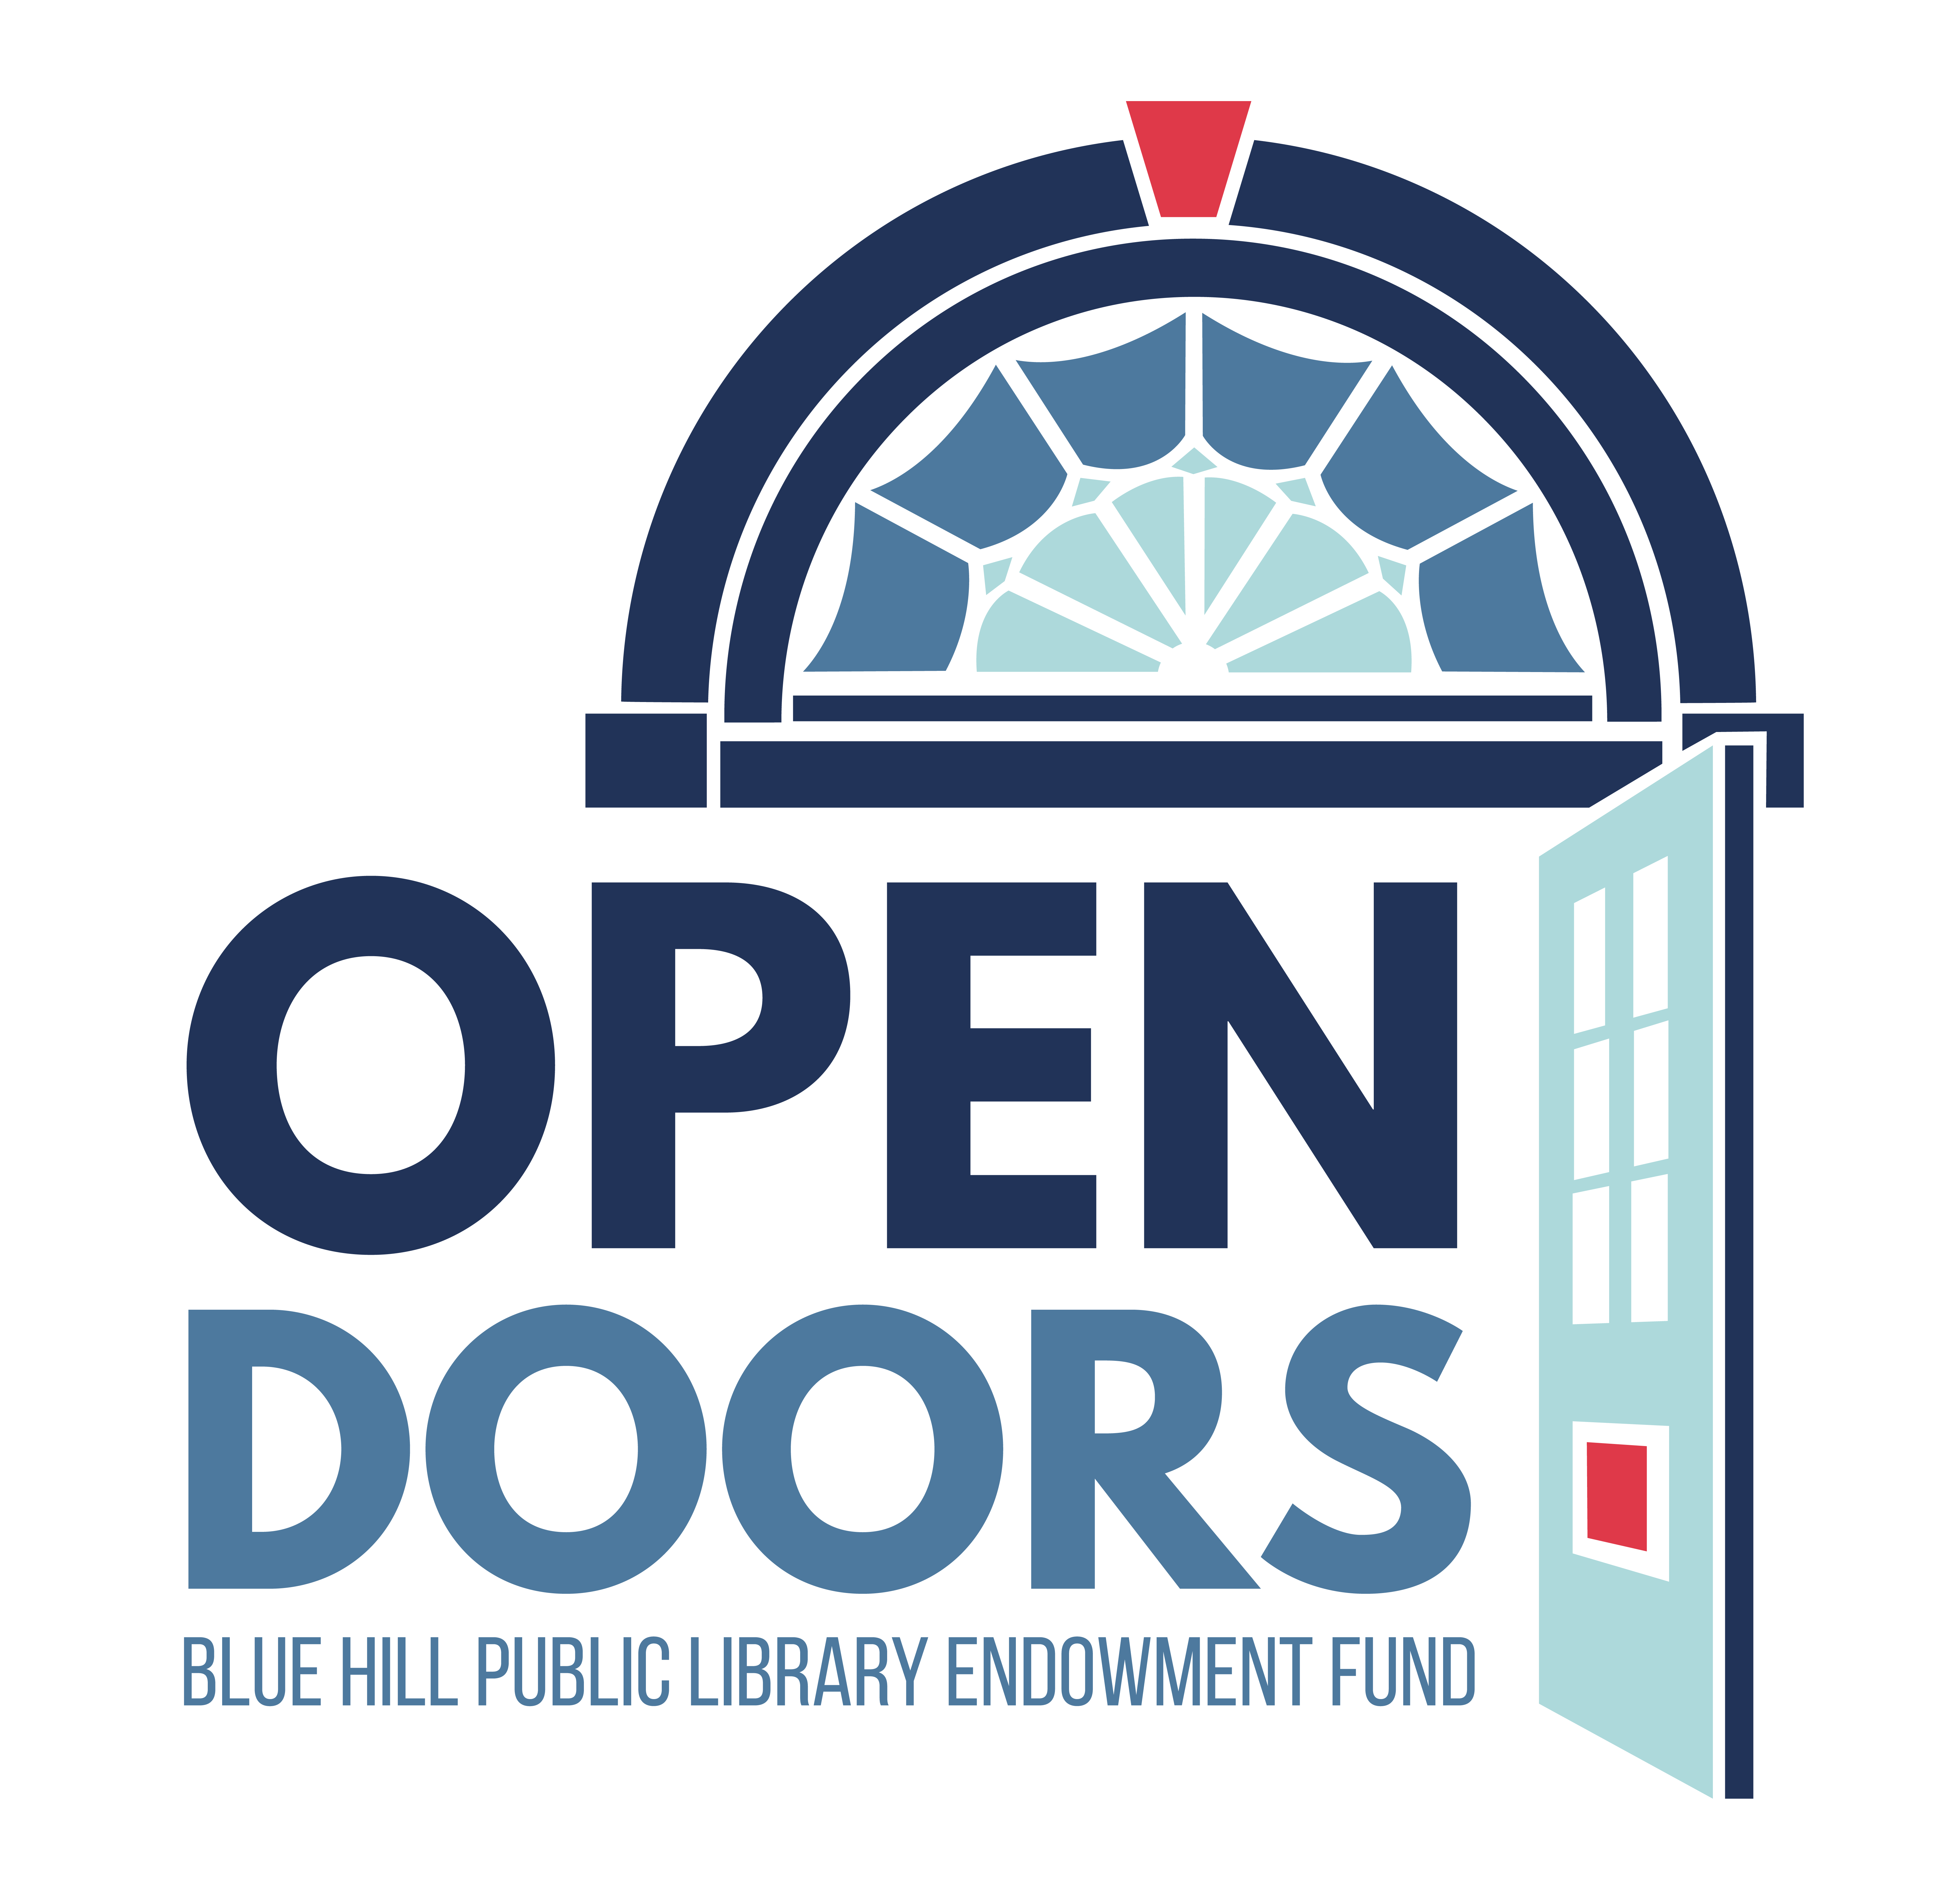 BHPL Open Doors logo. Image of doorway in blues and red with text that says Open Doors, Blue Hill Public Library Endowment Fund